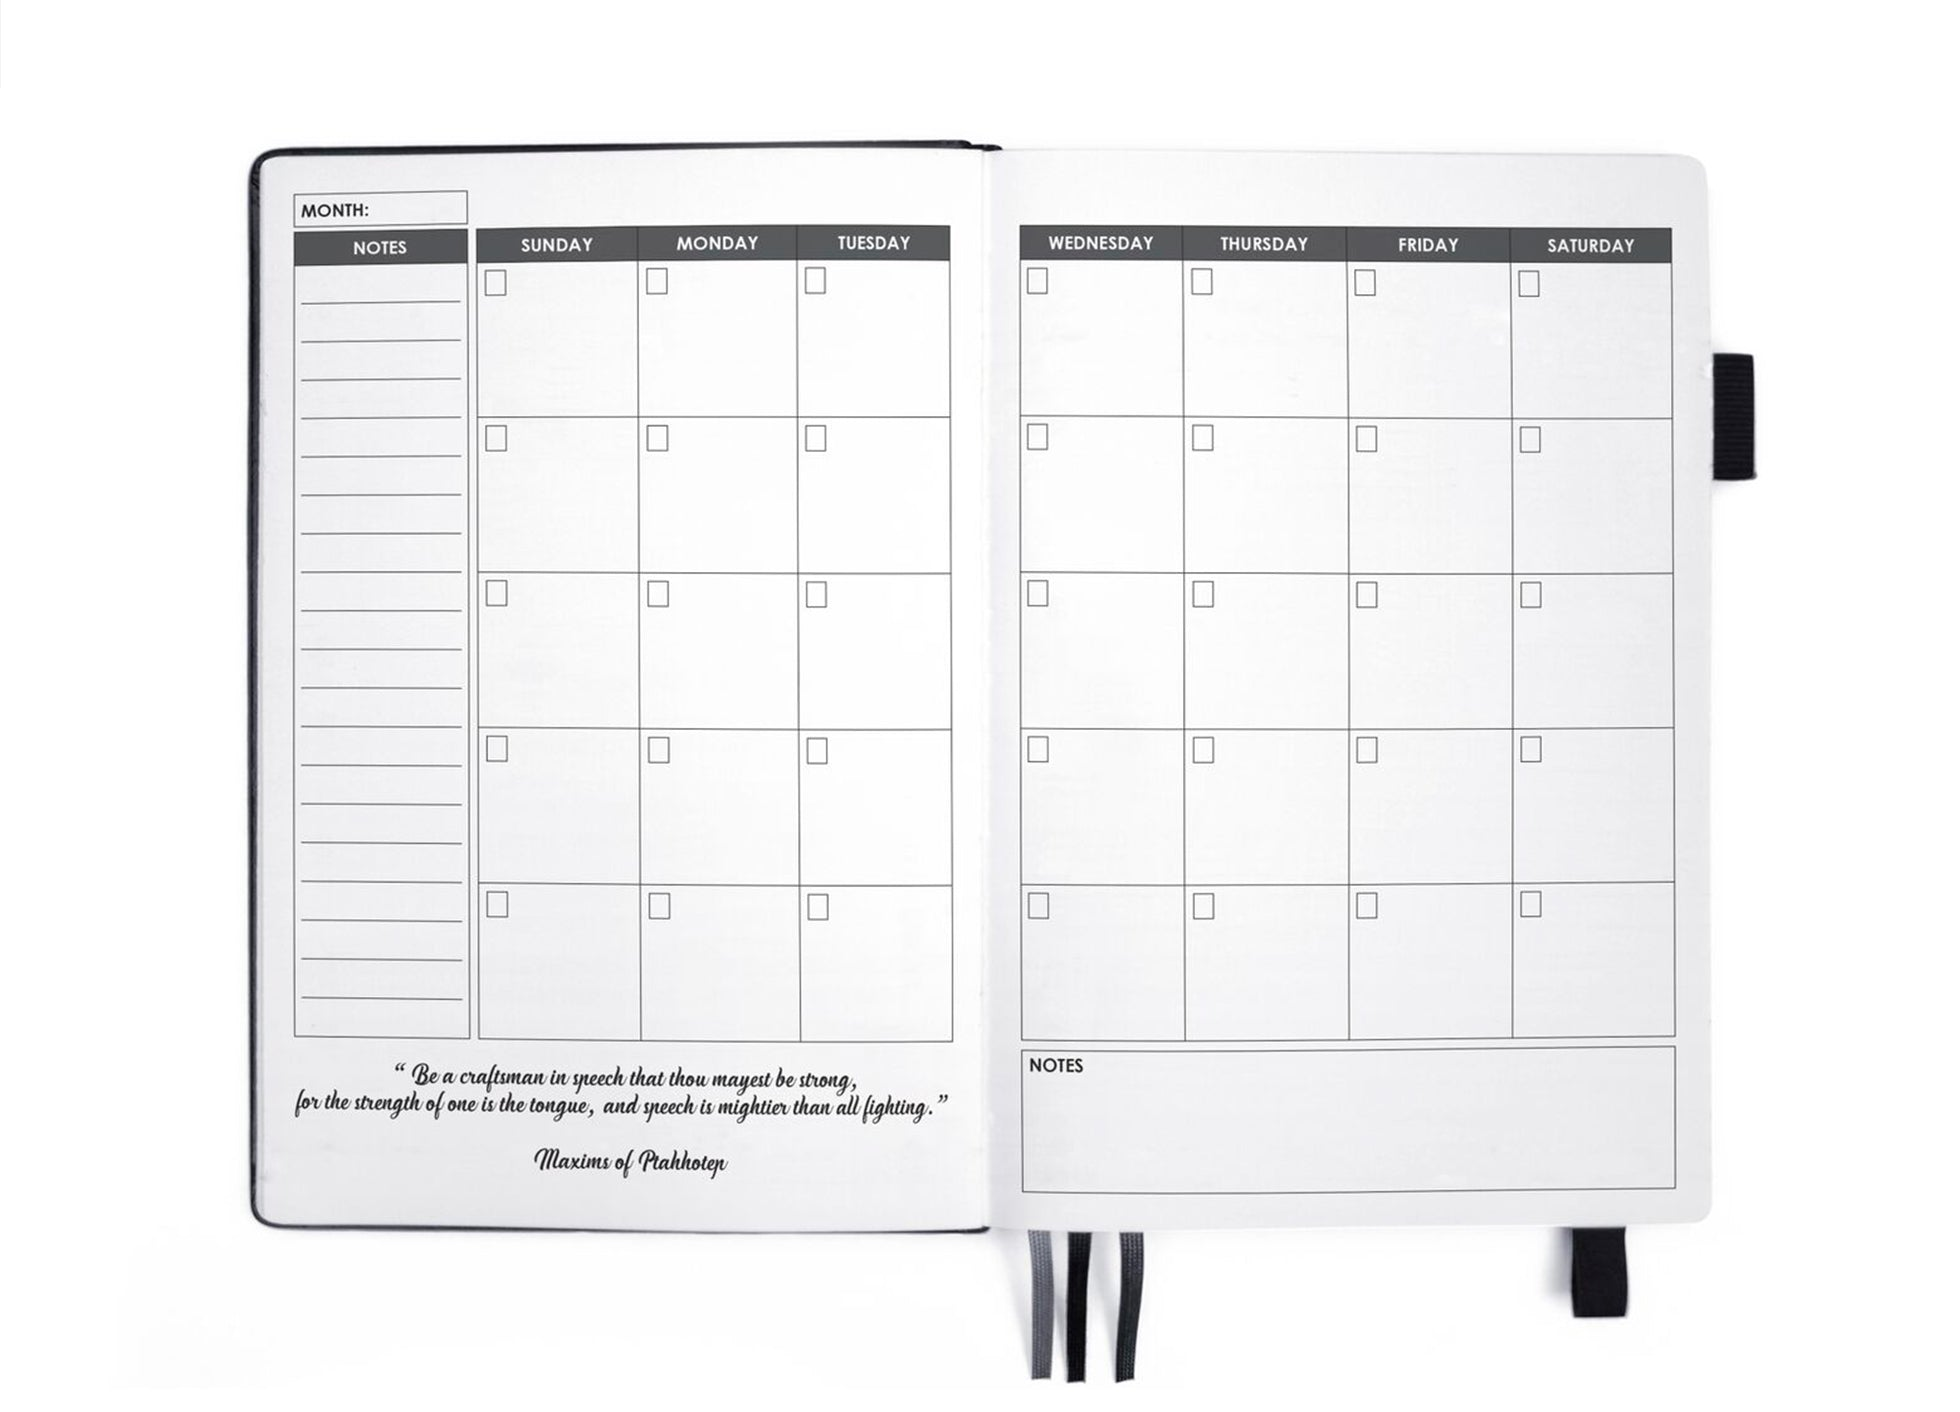 undated weekly planner